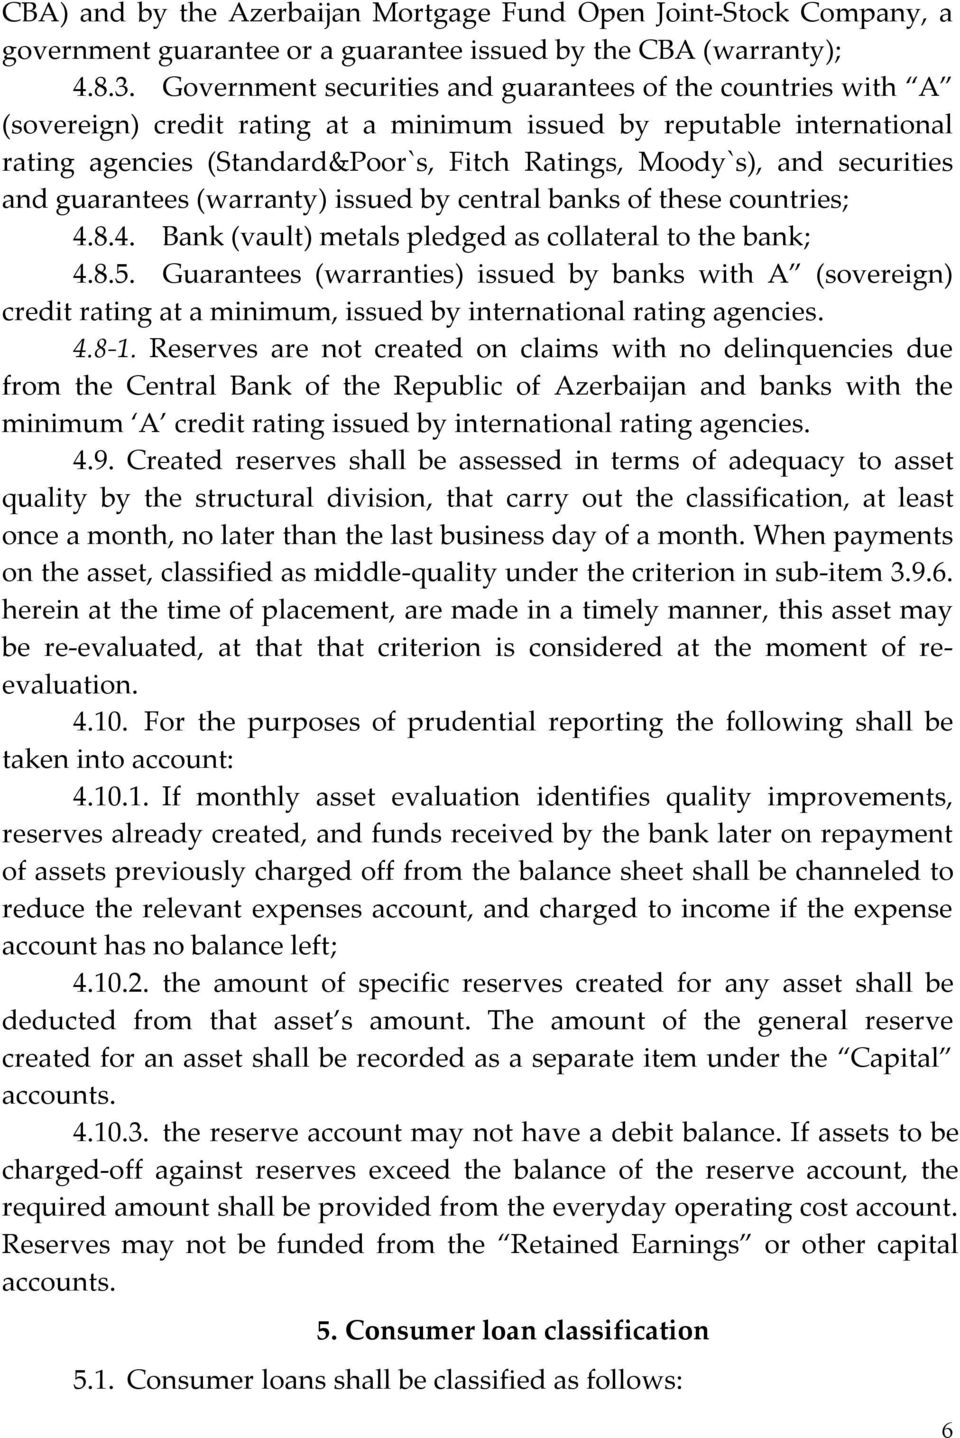 securities and guarantees (warranty) issued by central banks of these countries; 4.8.4. Bank (vault) metals pledged as collateral to the bank; 4.8.5.